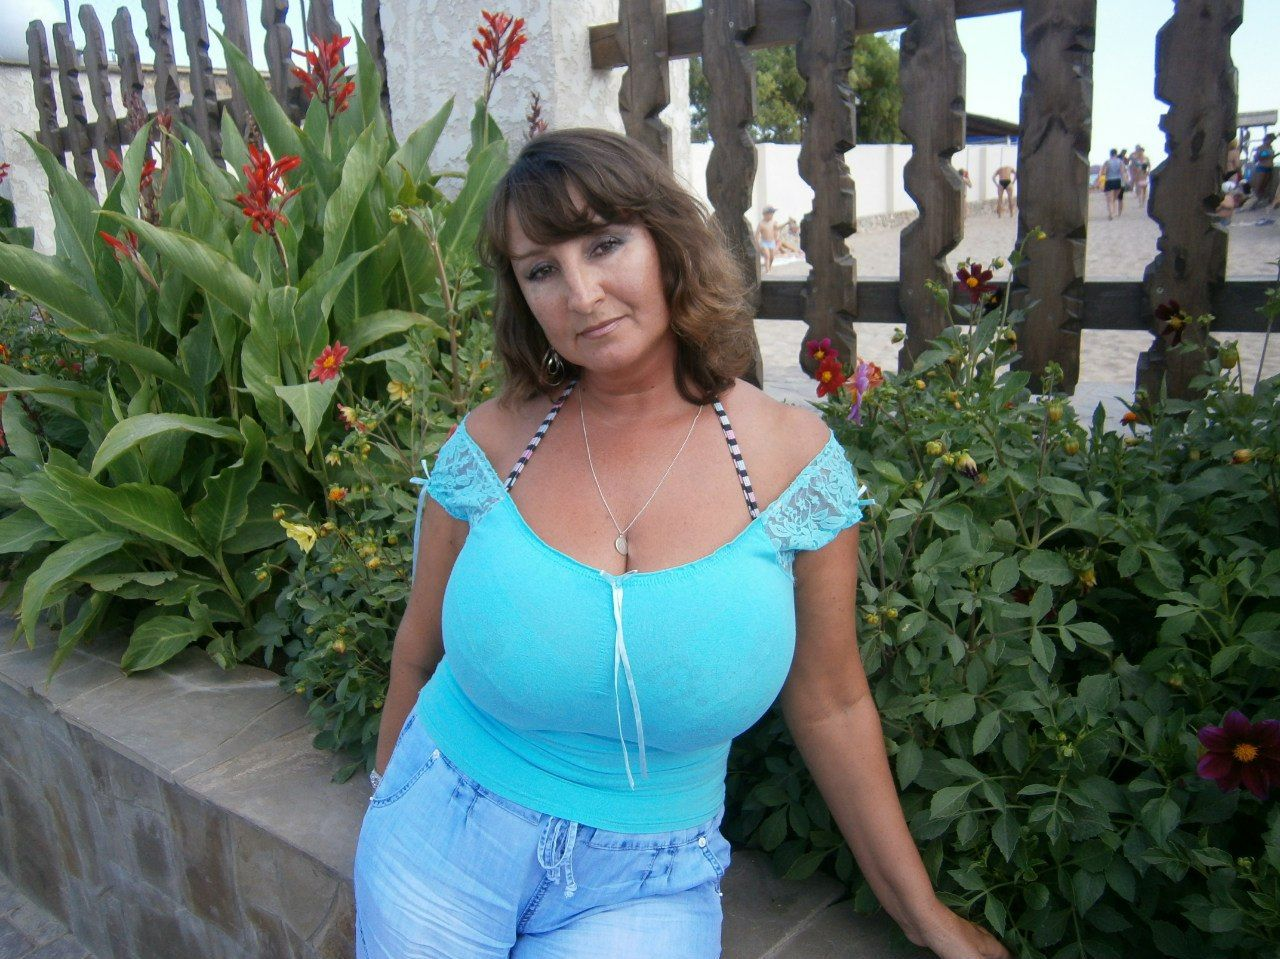 larisa cougar women Big cock porn videos on home of mature porn the heated, excited girls in all niches in all positions, absolutely free free mature porn videos.